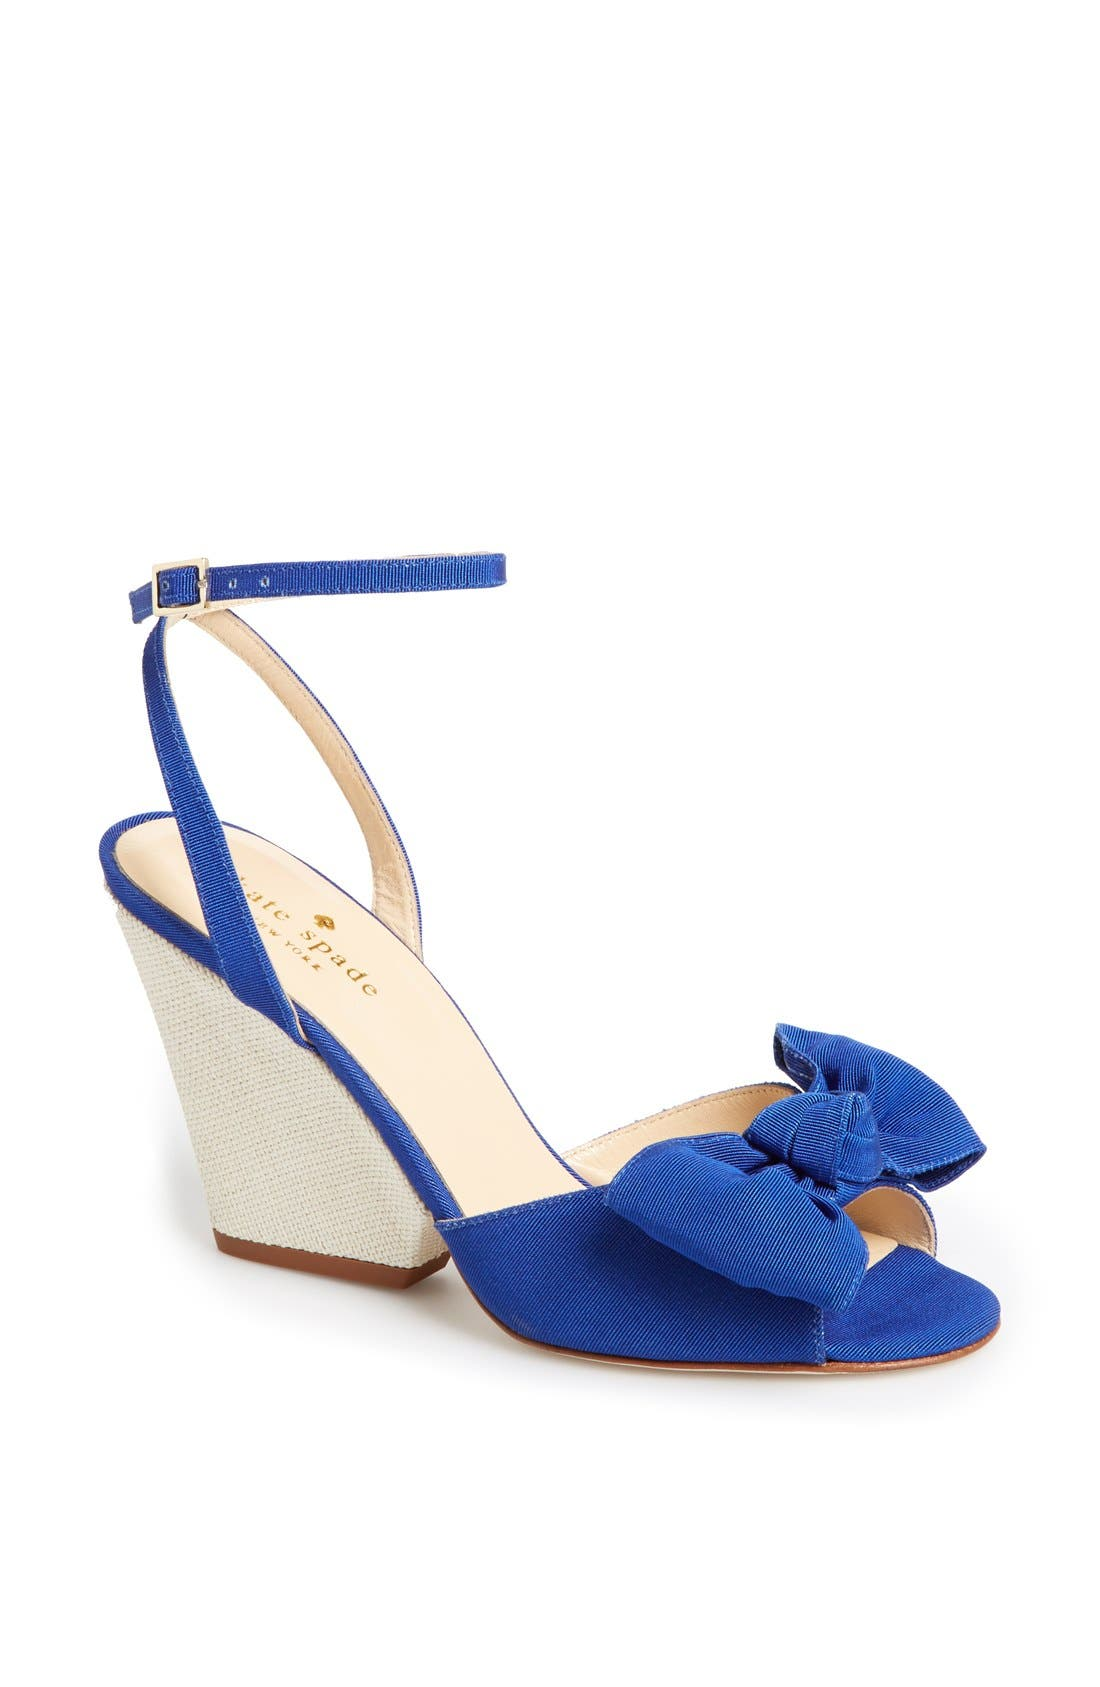 Alternate Image 1 Selected - kate spade new york 'iberis' wedge sandal